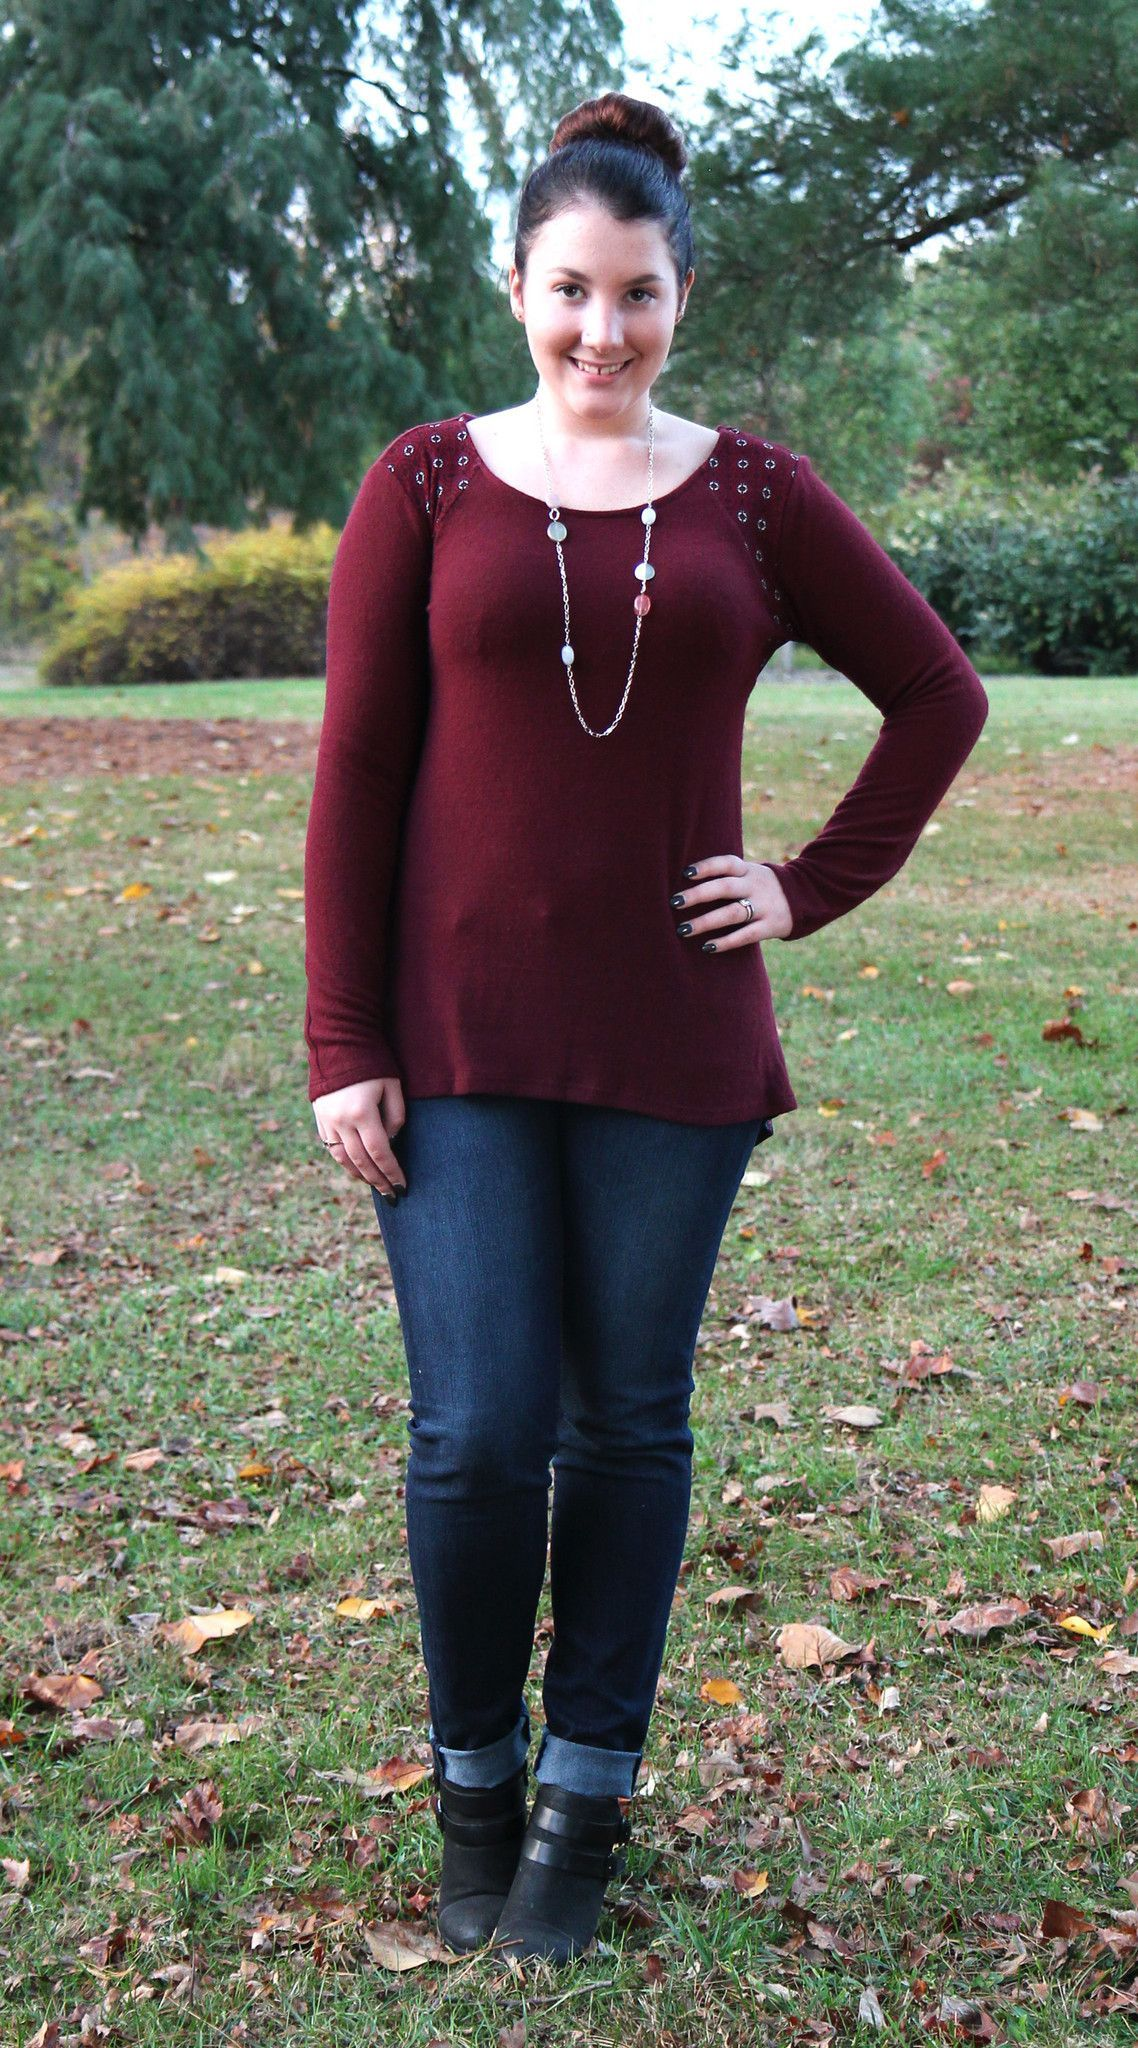 Gilli Paneled Tapestry Printed Top in Burgundy